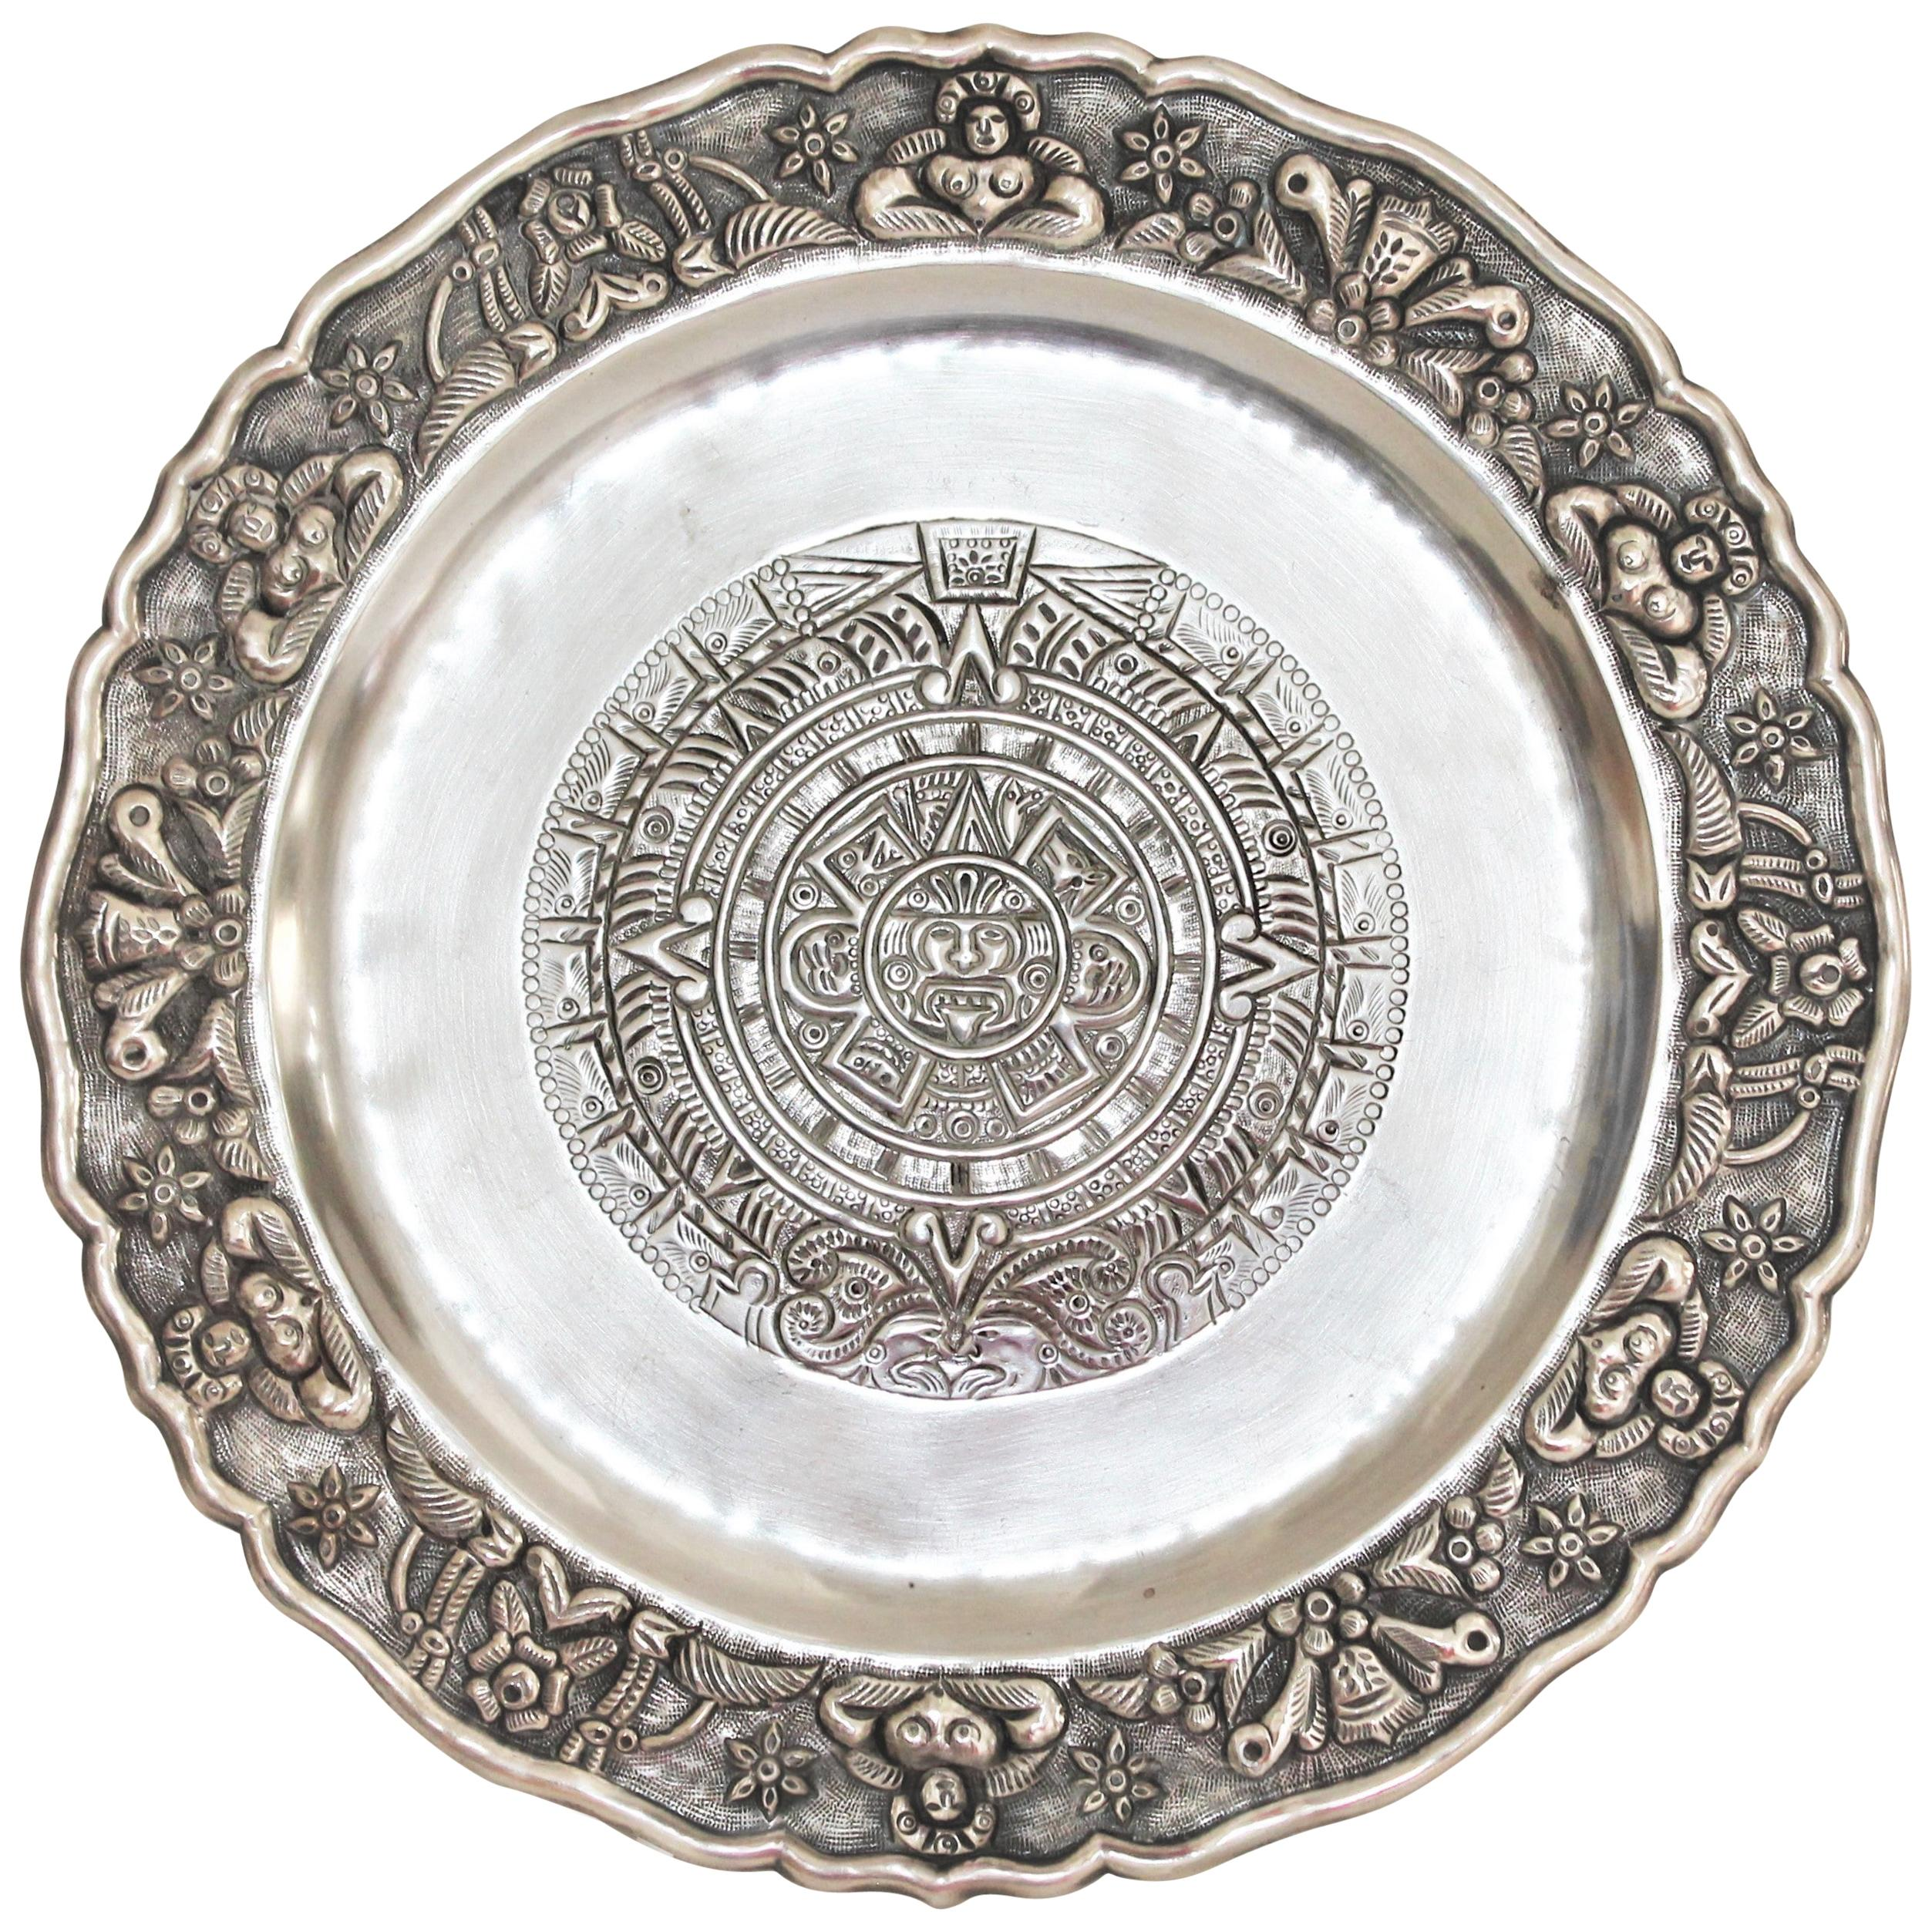 Rare Mayan Indian with Aztec Mexican Design Sterling Silver Dish, 925/1000